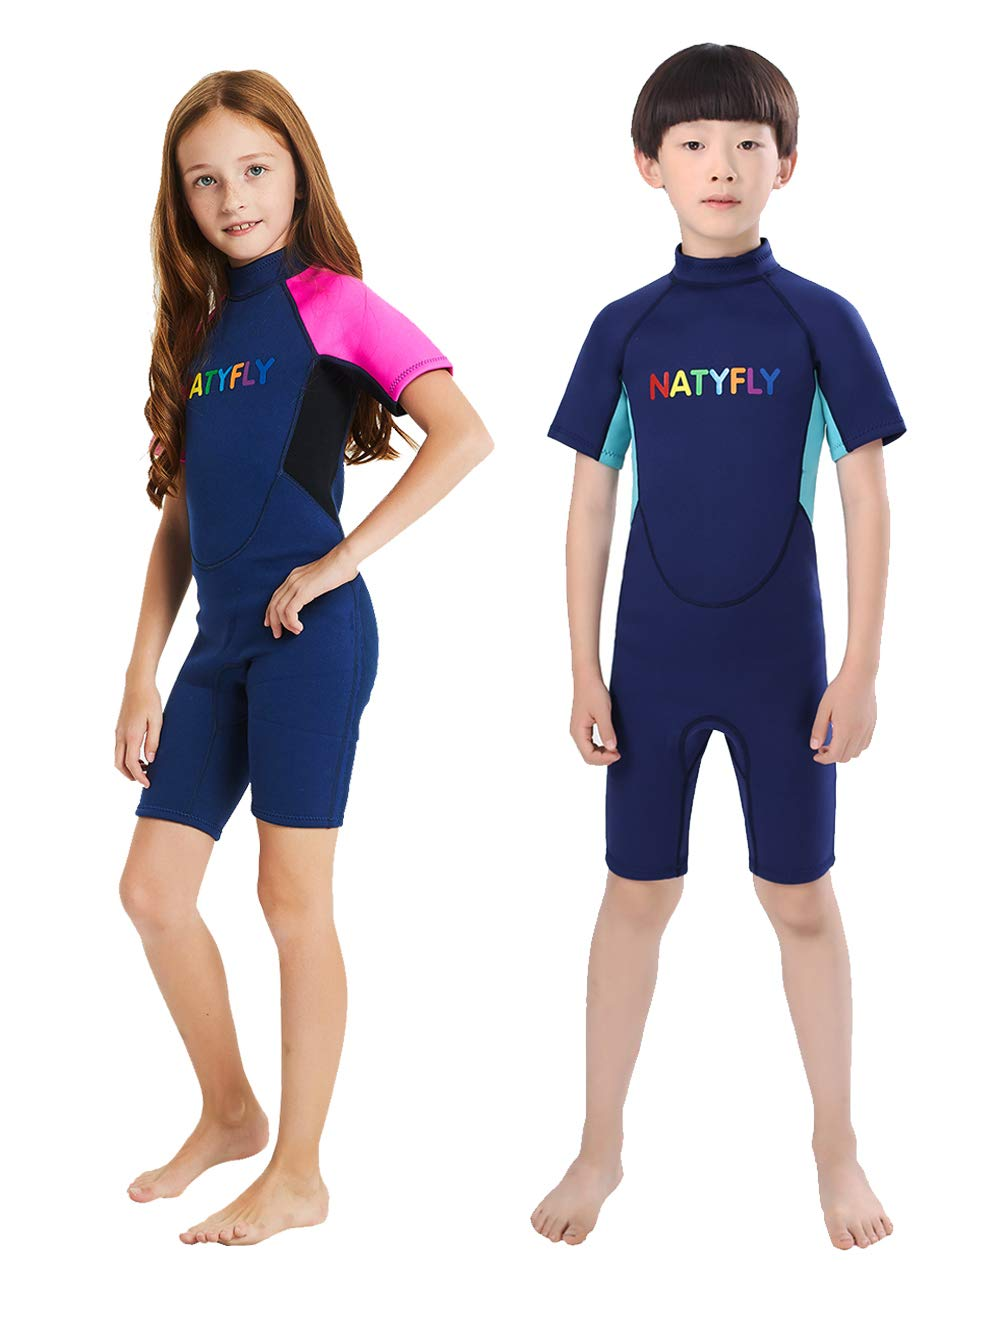 NATYFLY Kids Wetsuit Premium 2mm Neoprene Short Sleeve Youth Shorty Wetsuit for Girls Boys Child (Pink, Small) by NATYFLY